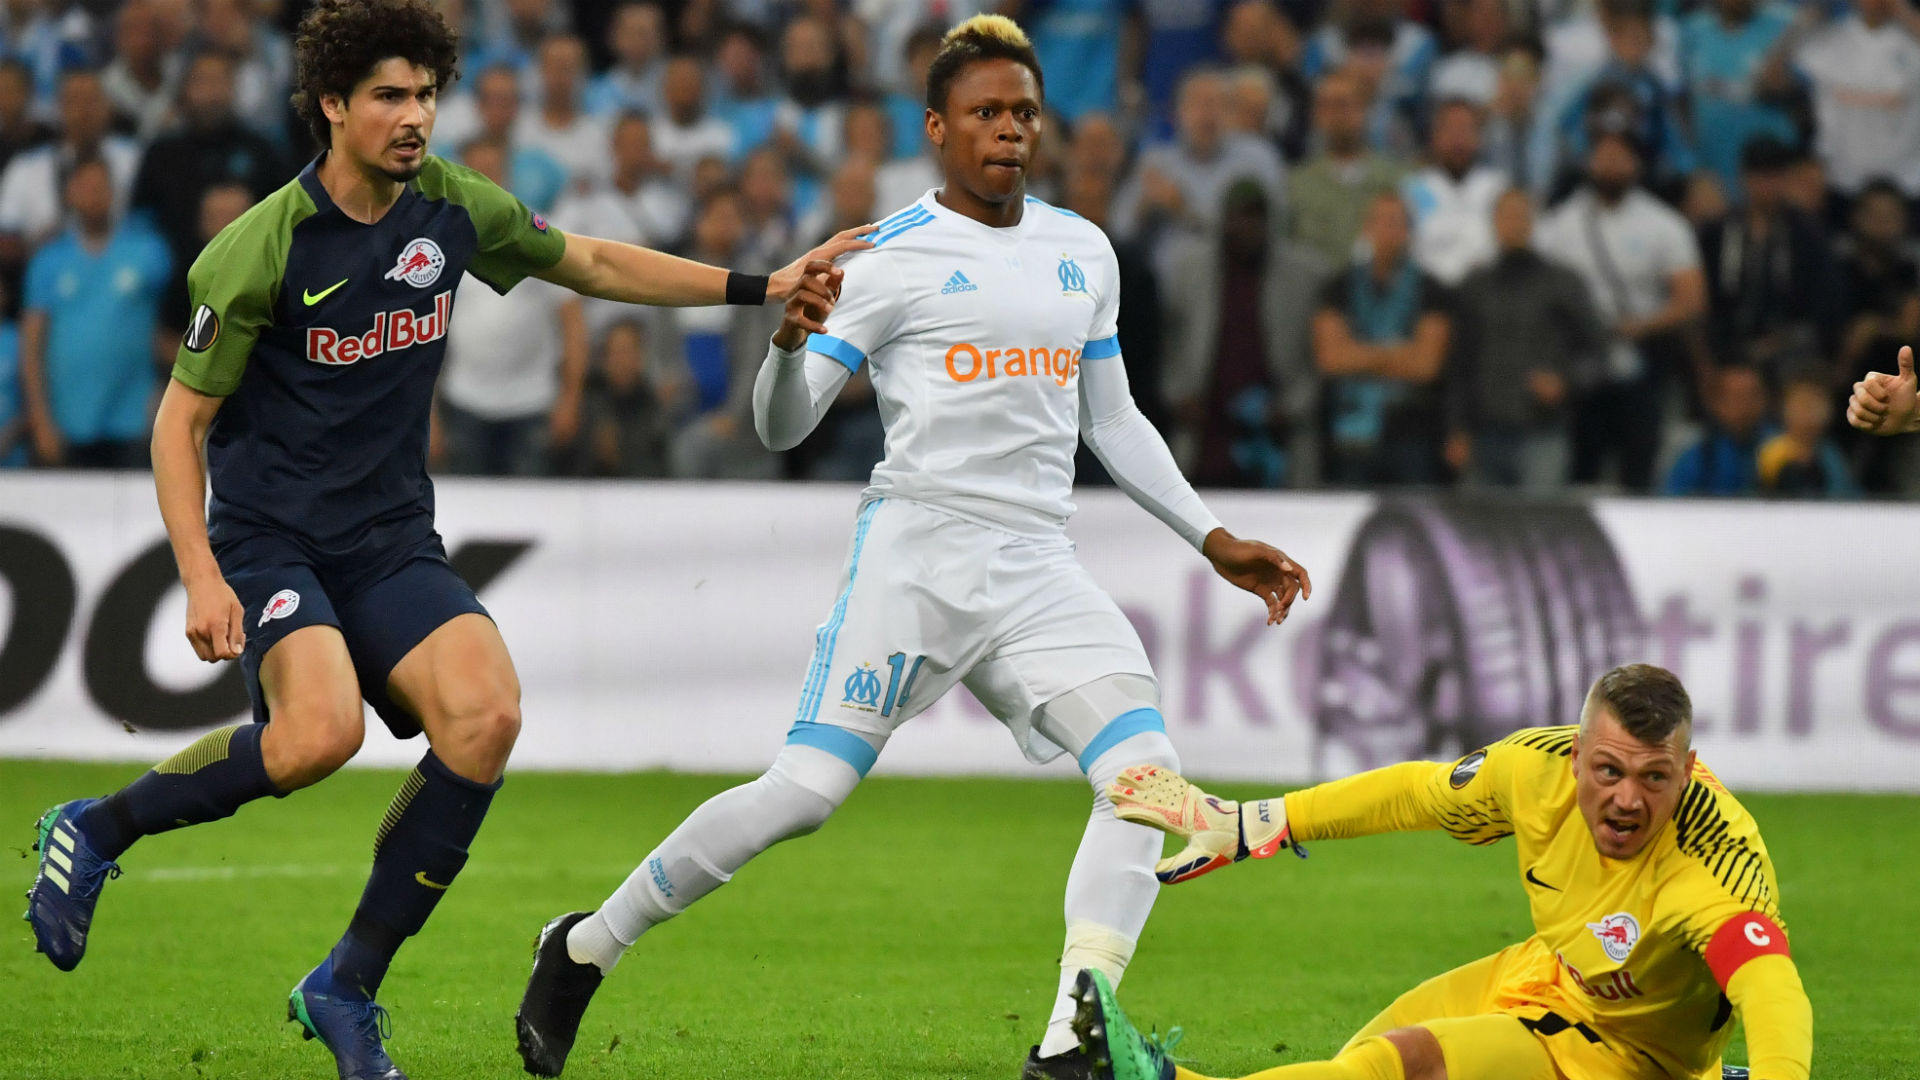 Salzburg force extra time in Europa League semi-final with Marseille